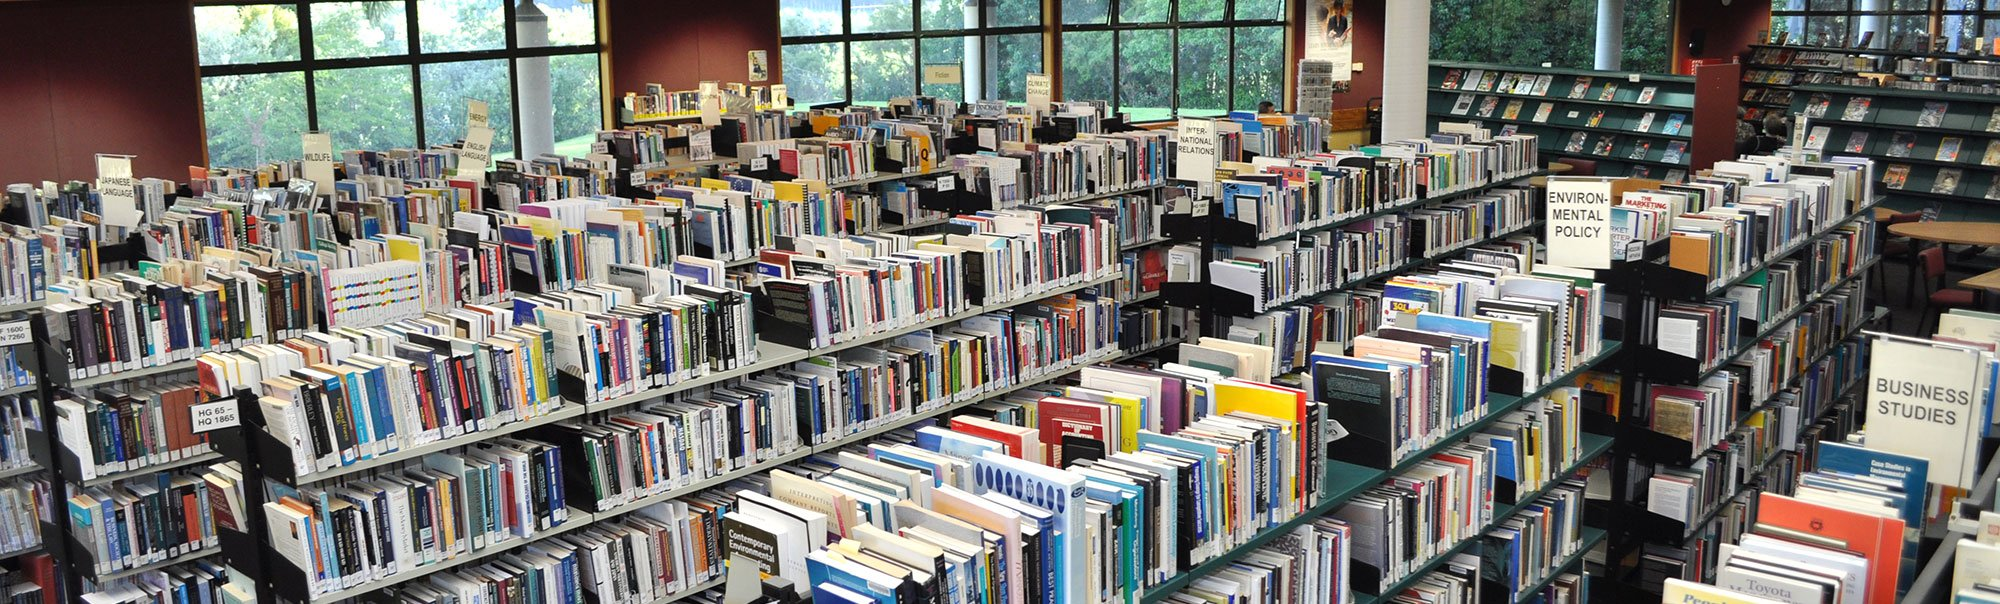 Facilities_library.jpg